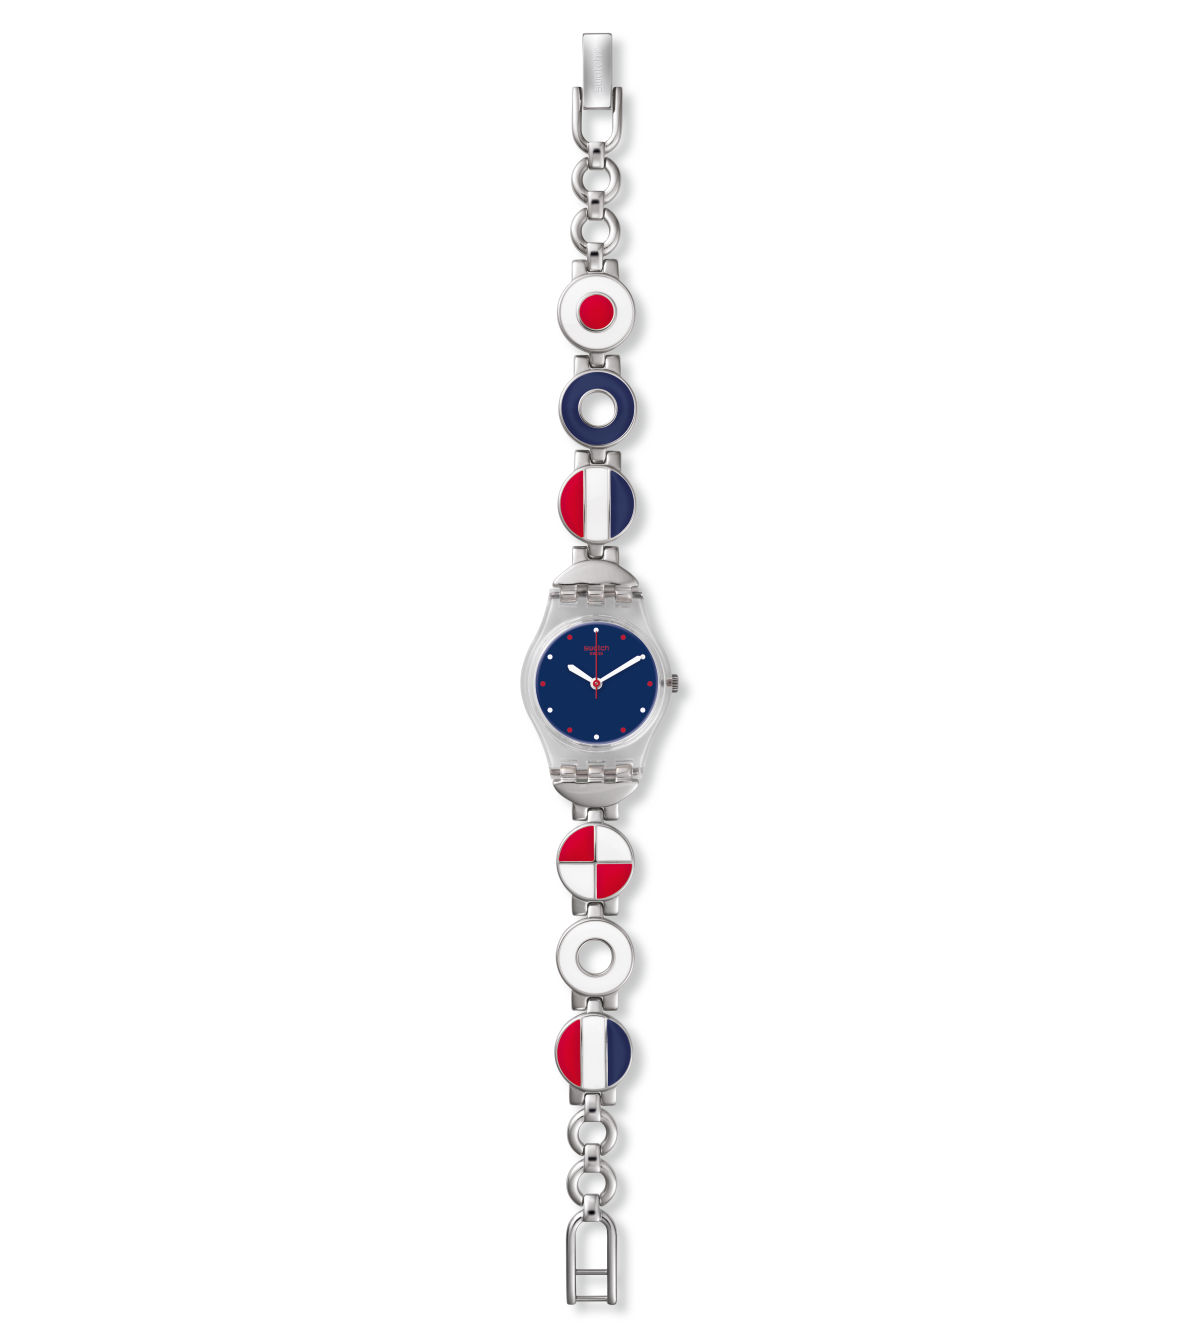 Genskie_chasy_Swatch (34)